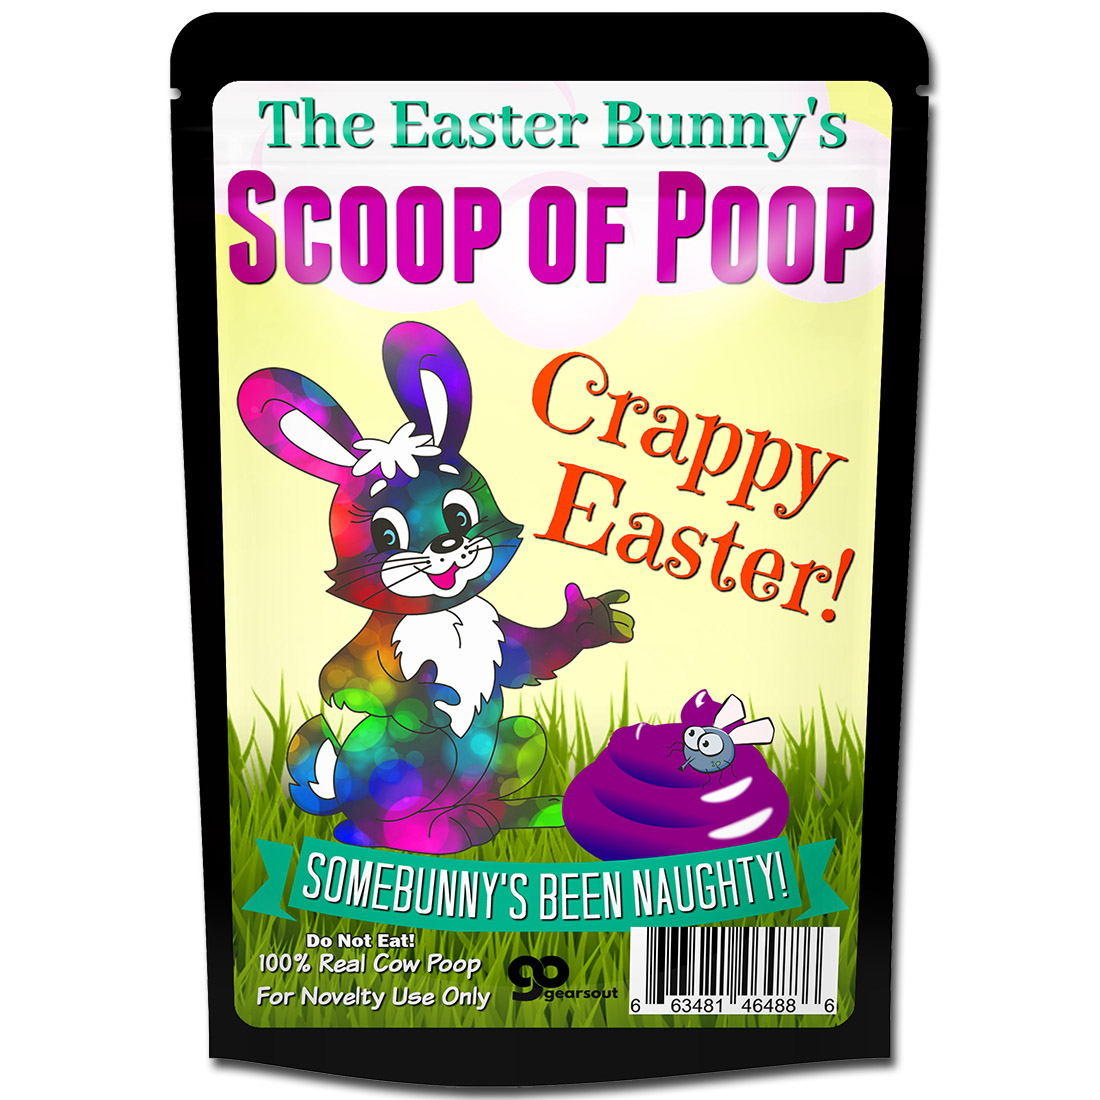 Easter bunny scoop of poop crappy easter gag gift 950 funslurp easter bunny scoop of poop crappy easter gag gift negle Gallery